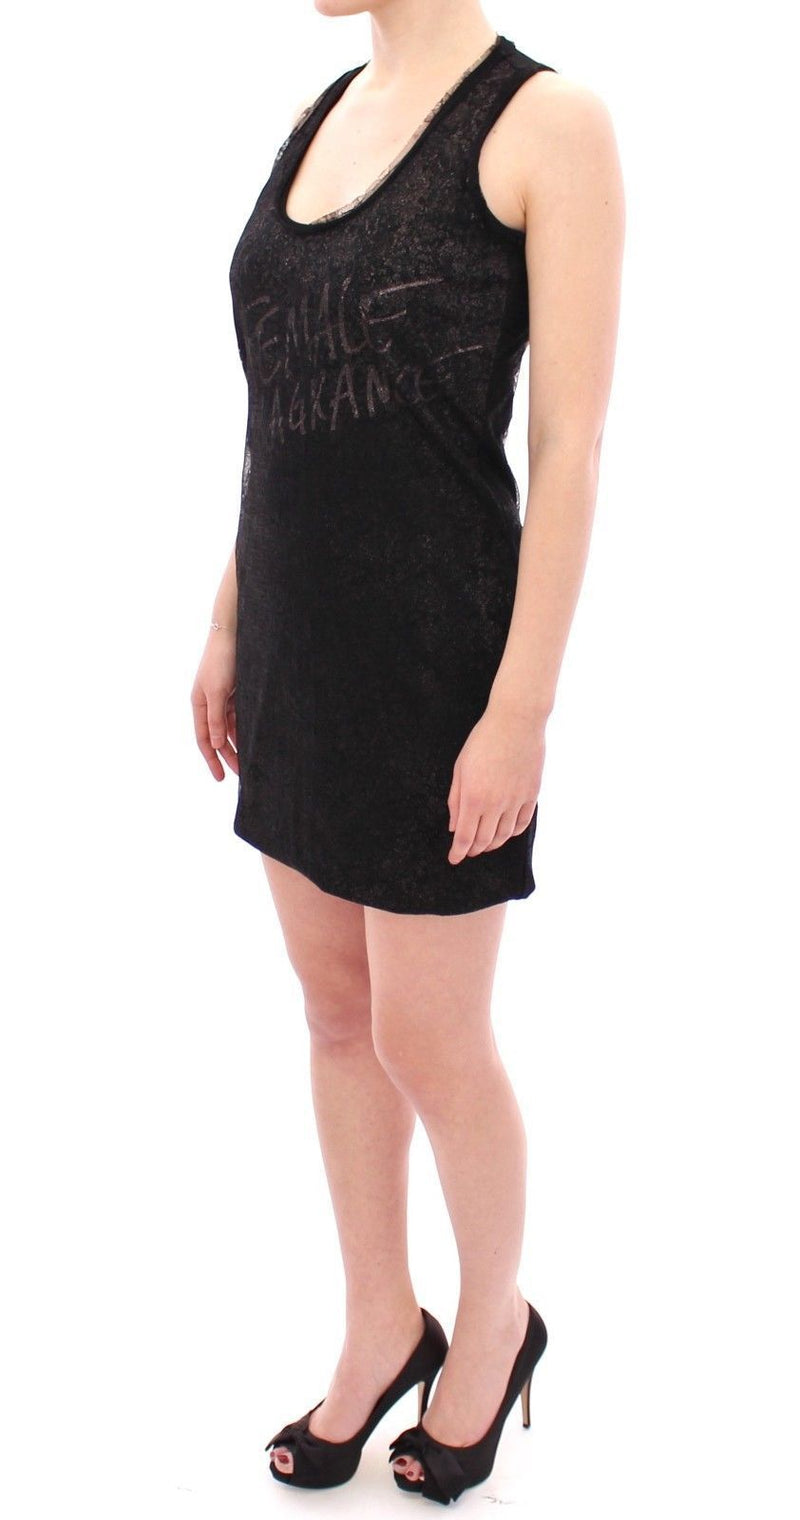 Black Lace Lined Stretch Mini Dress